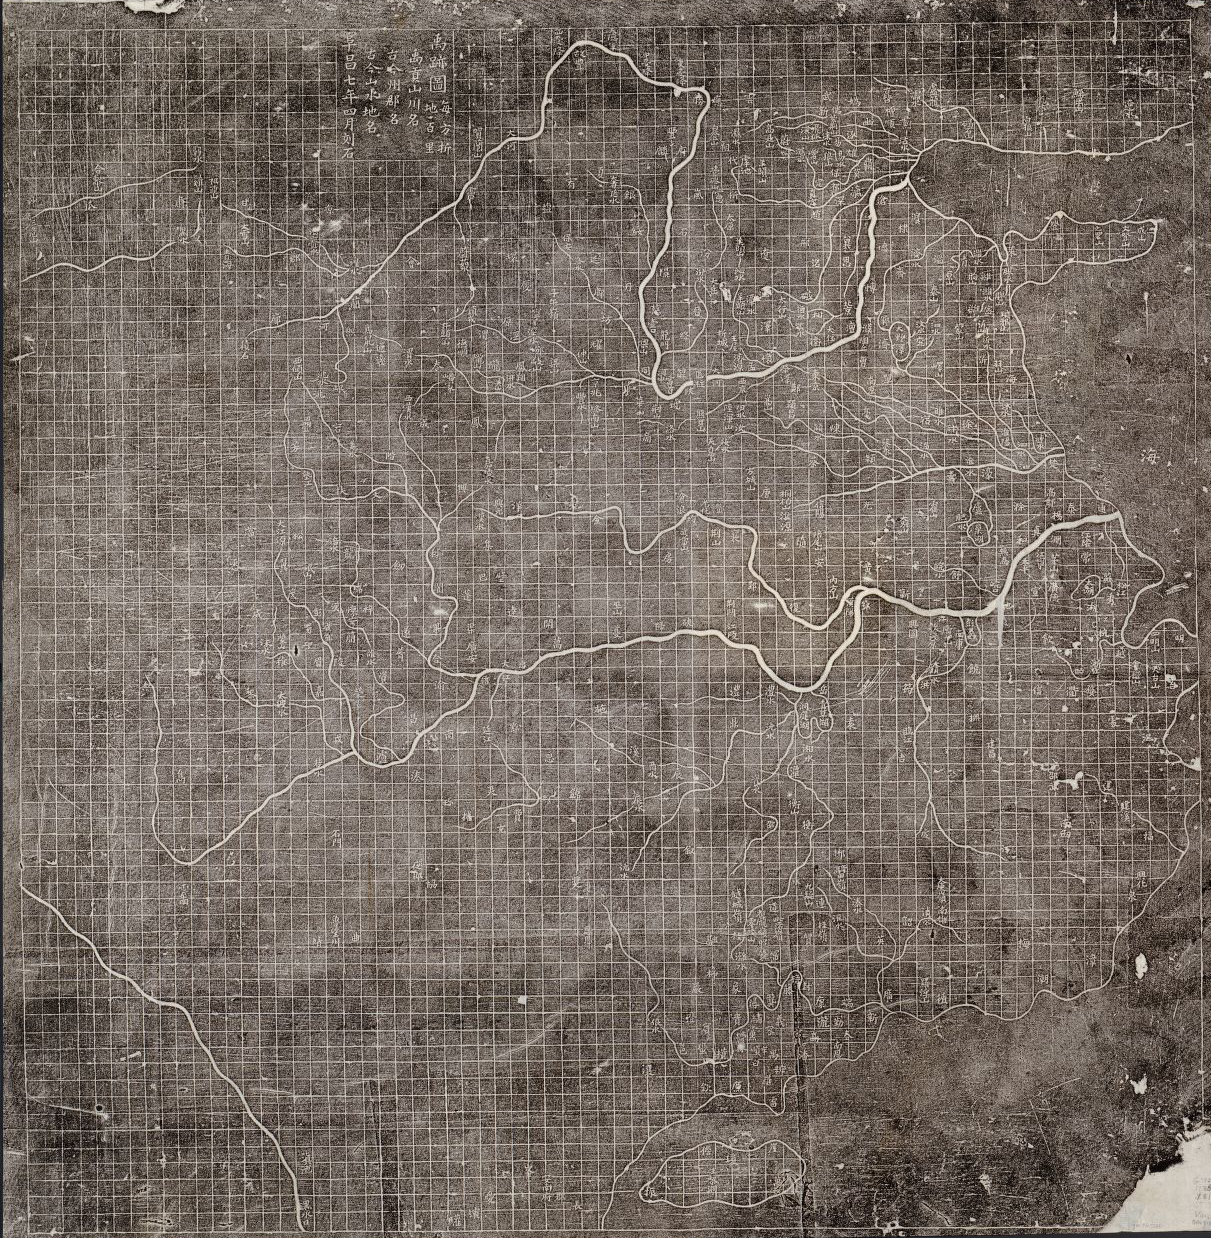 Stone rubbing, c. 1933, of the Yü Ji Tu map, 1136. Library of Congress, Geography and Map Division.